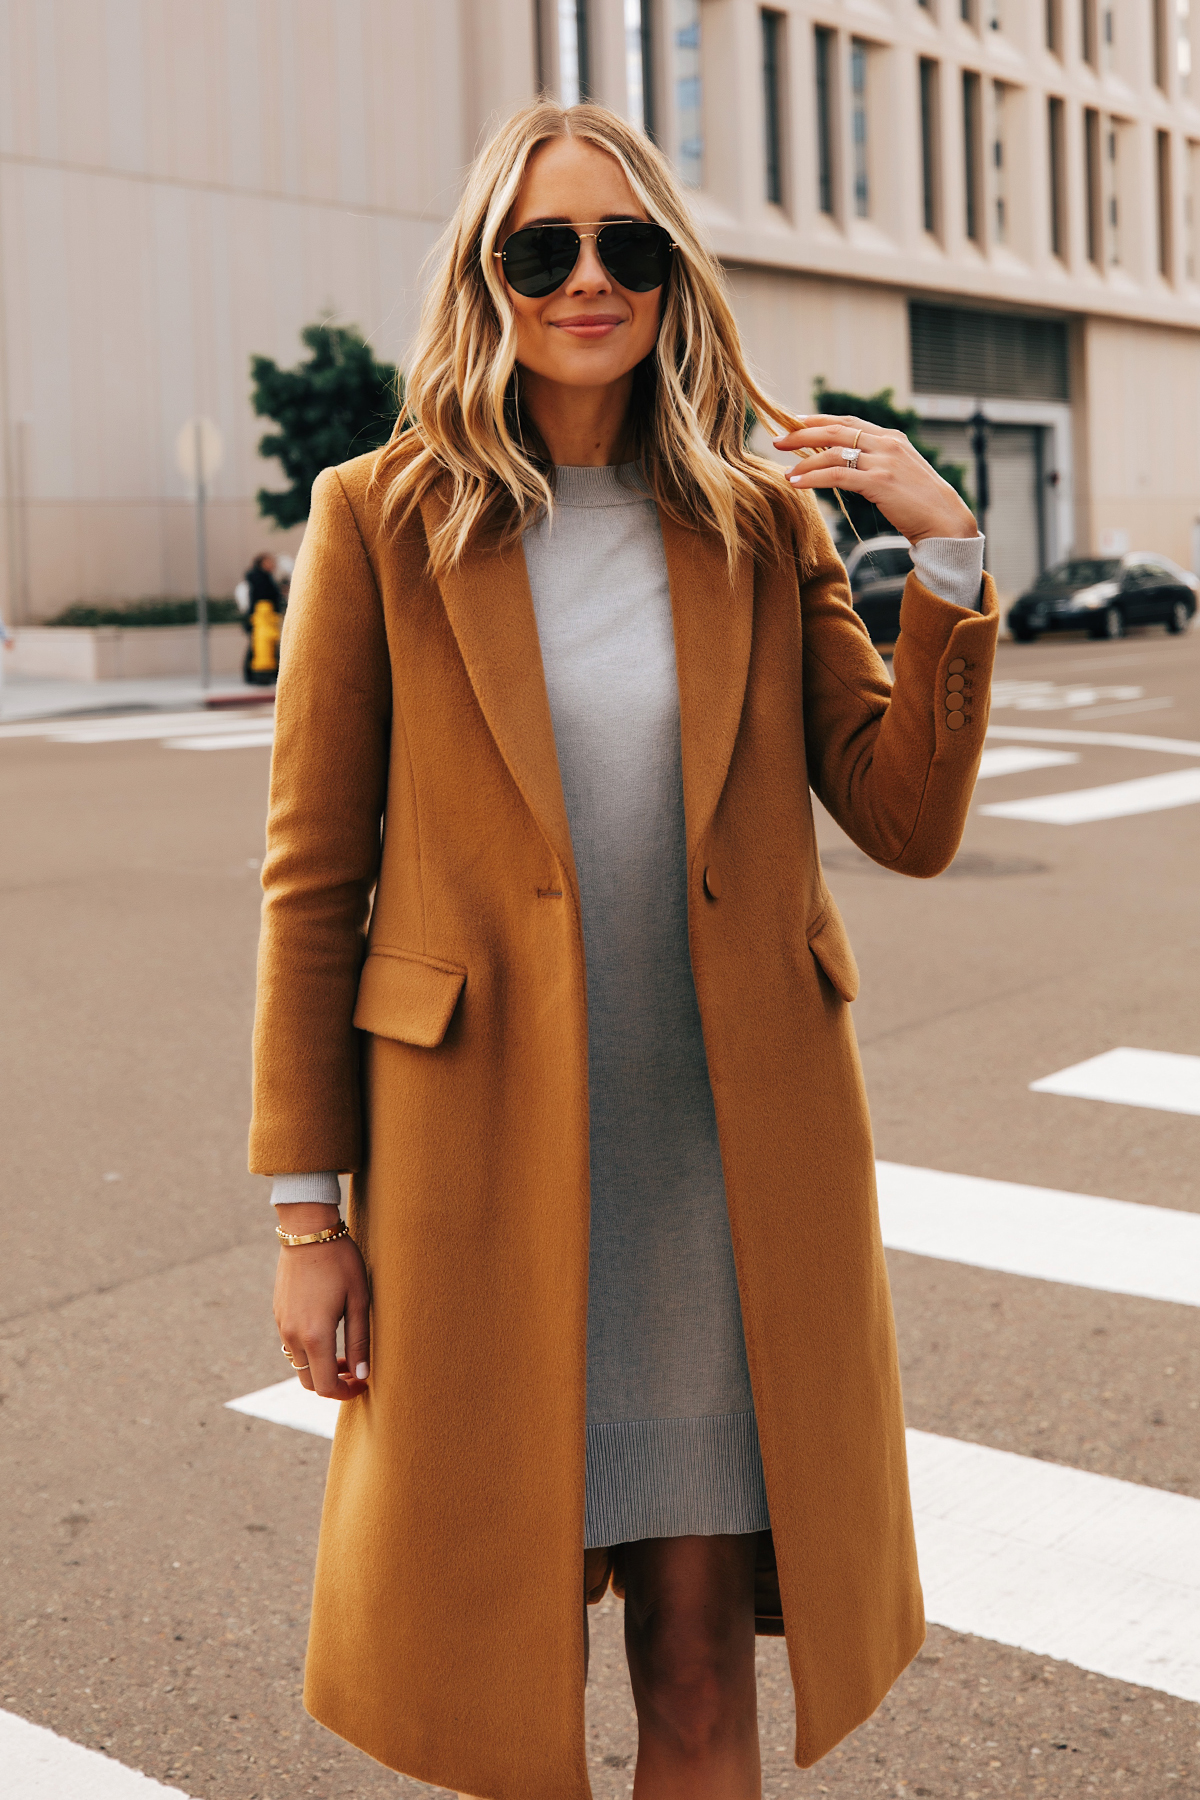 Fashion Jackson Wearing Club Monaco Camel Coat Grey Sweater Dress